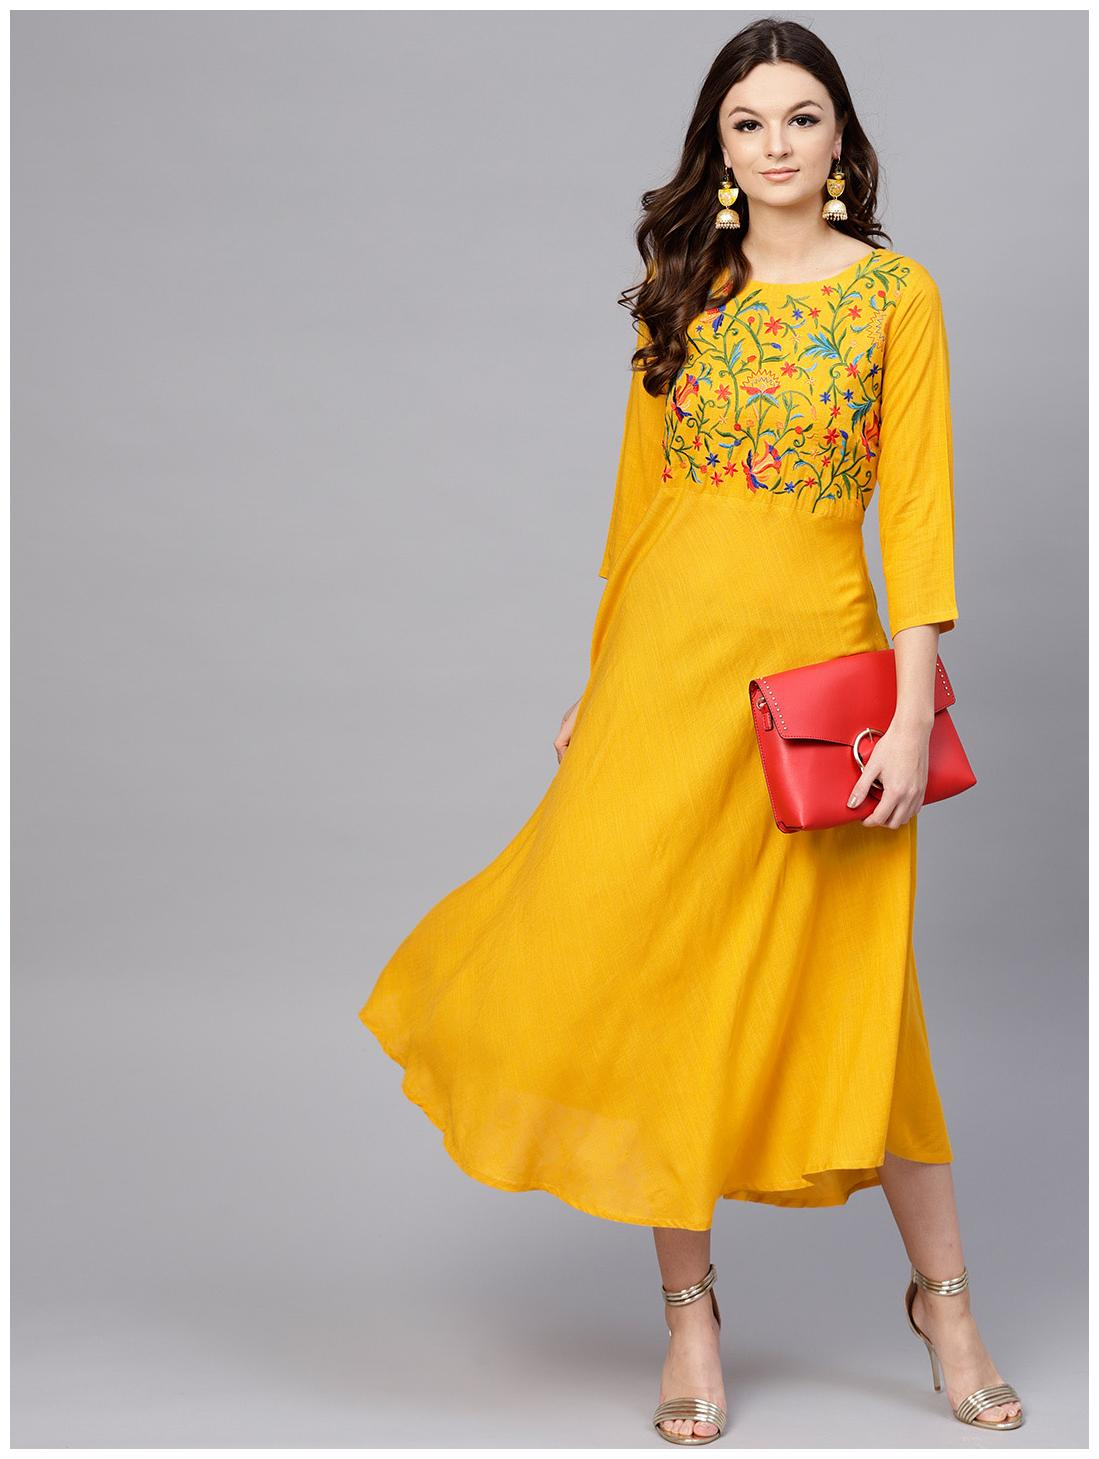 https://assetscdn1.paytm.com/images/catalog/product/A/AP/APPAASI-YELLOW-BHUM69246C26D6484/0..jpg